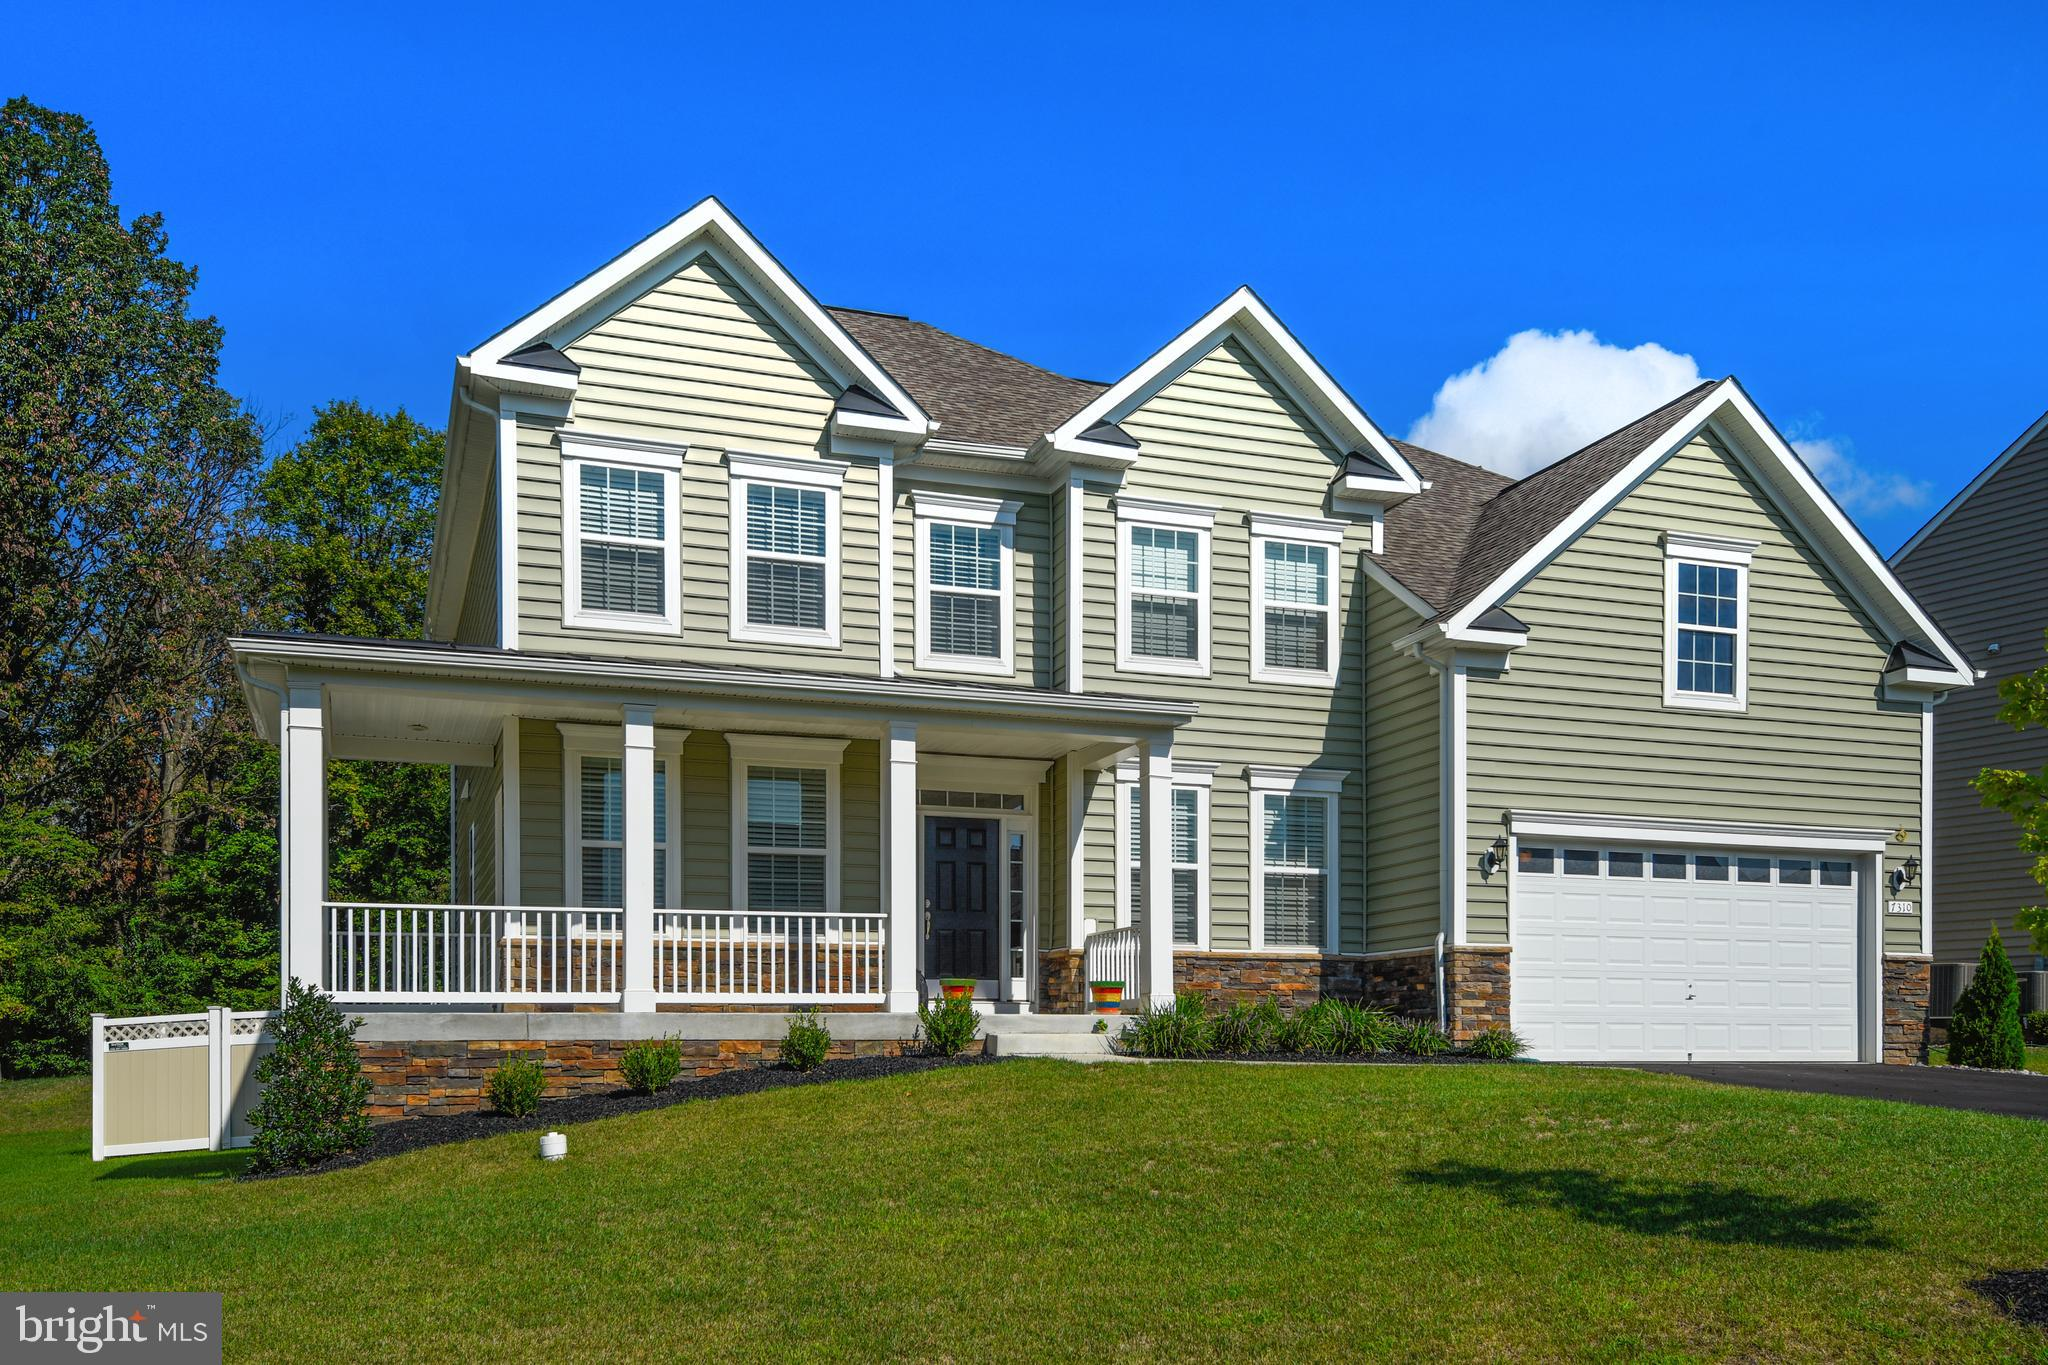 Welcome to this beautiful 4 bedroom, 2 and ½ bath home located in the much sought-after community of